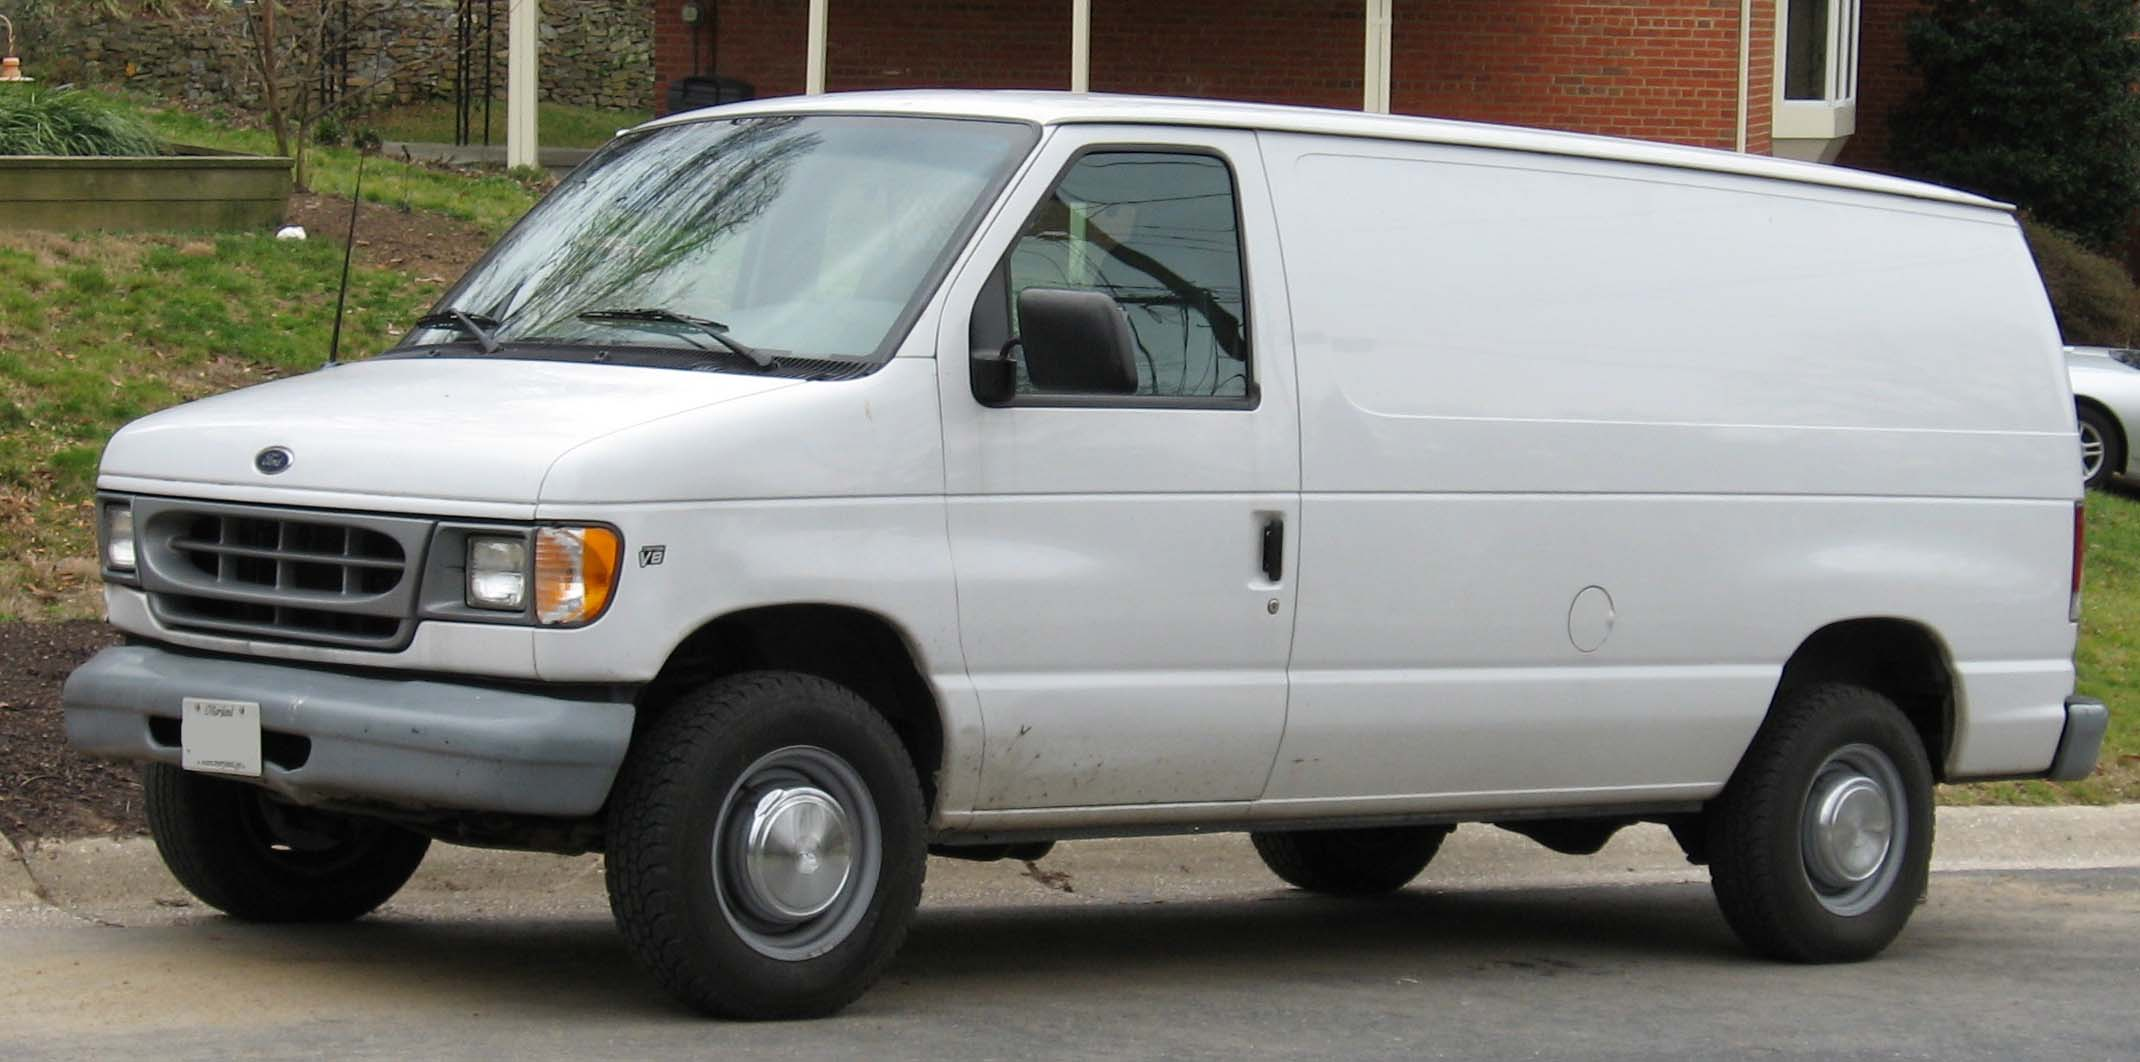 File:Ford--Econoline.jpg - Wikipedia, the free encyclopedia